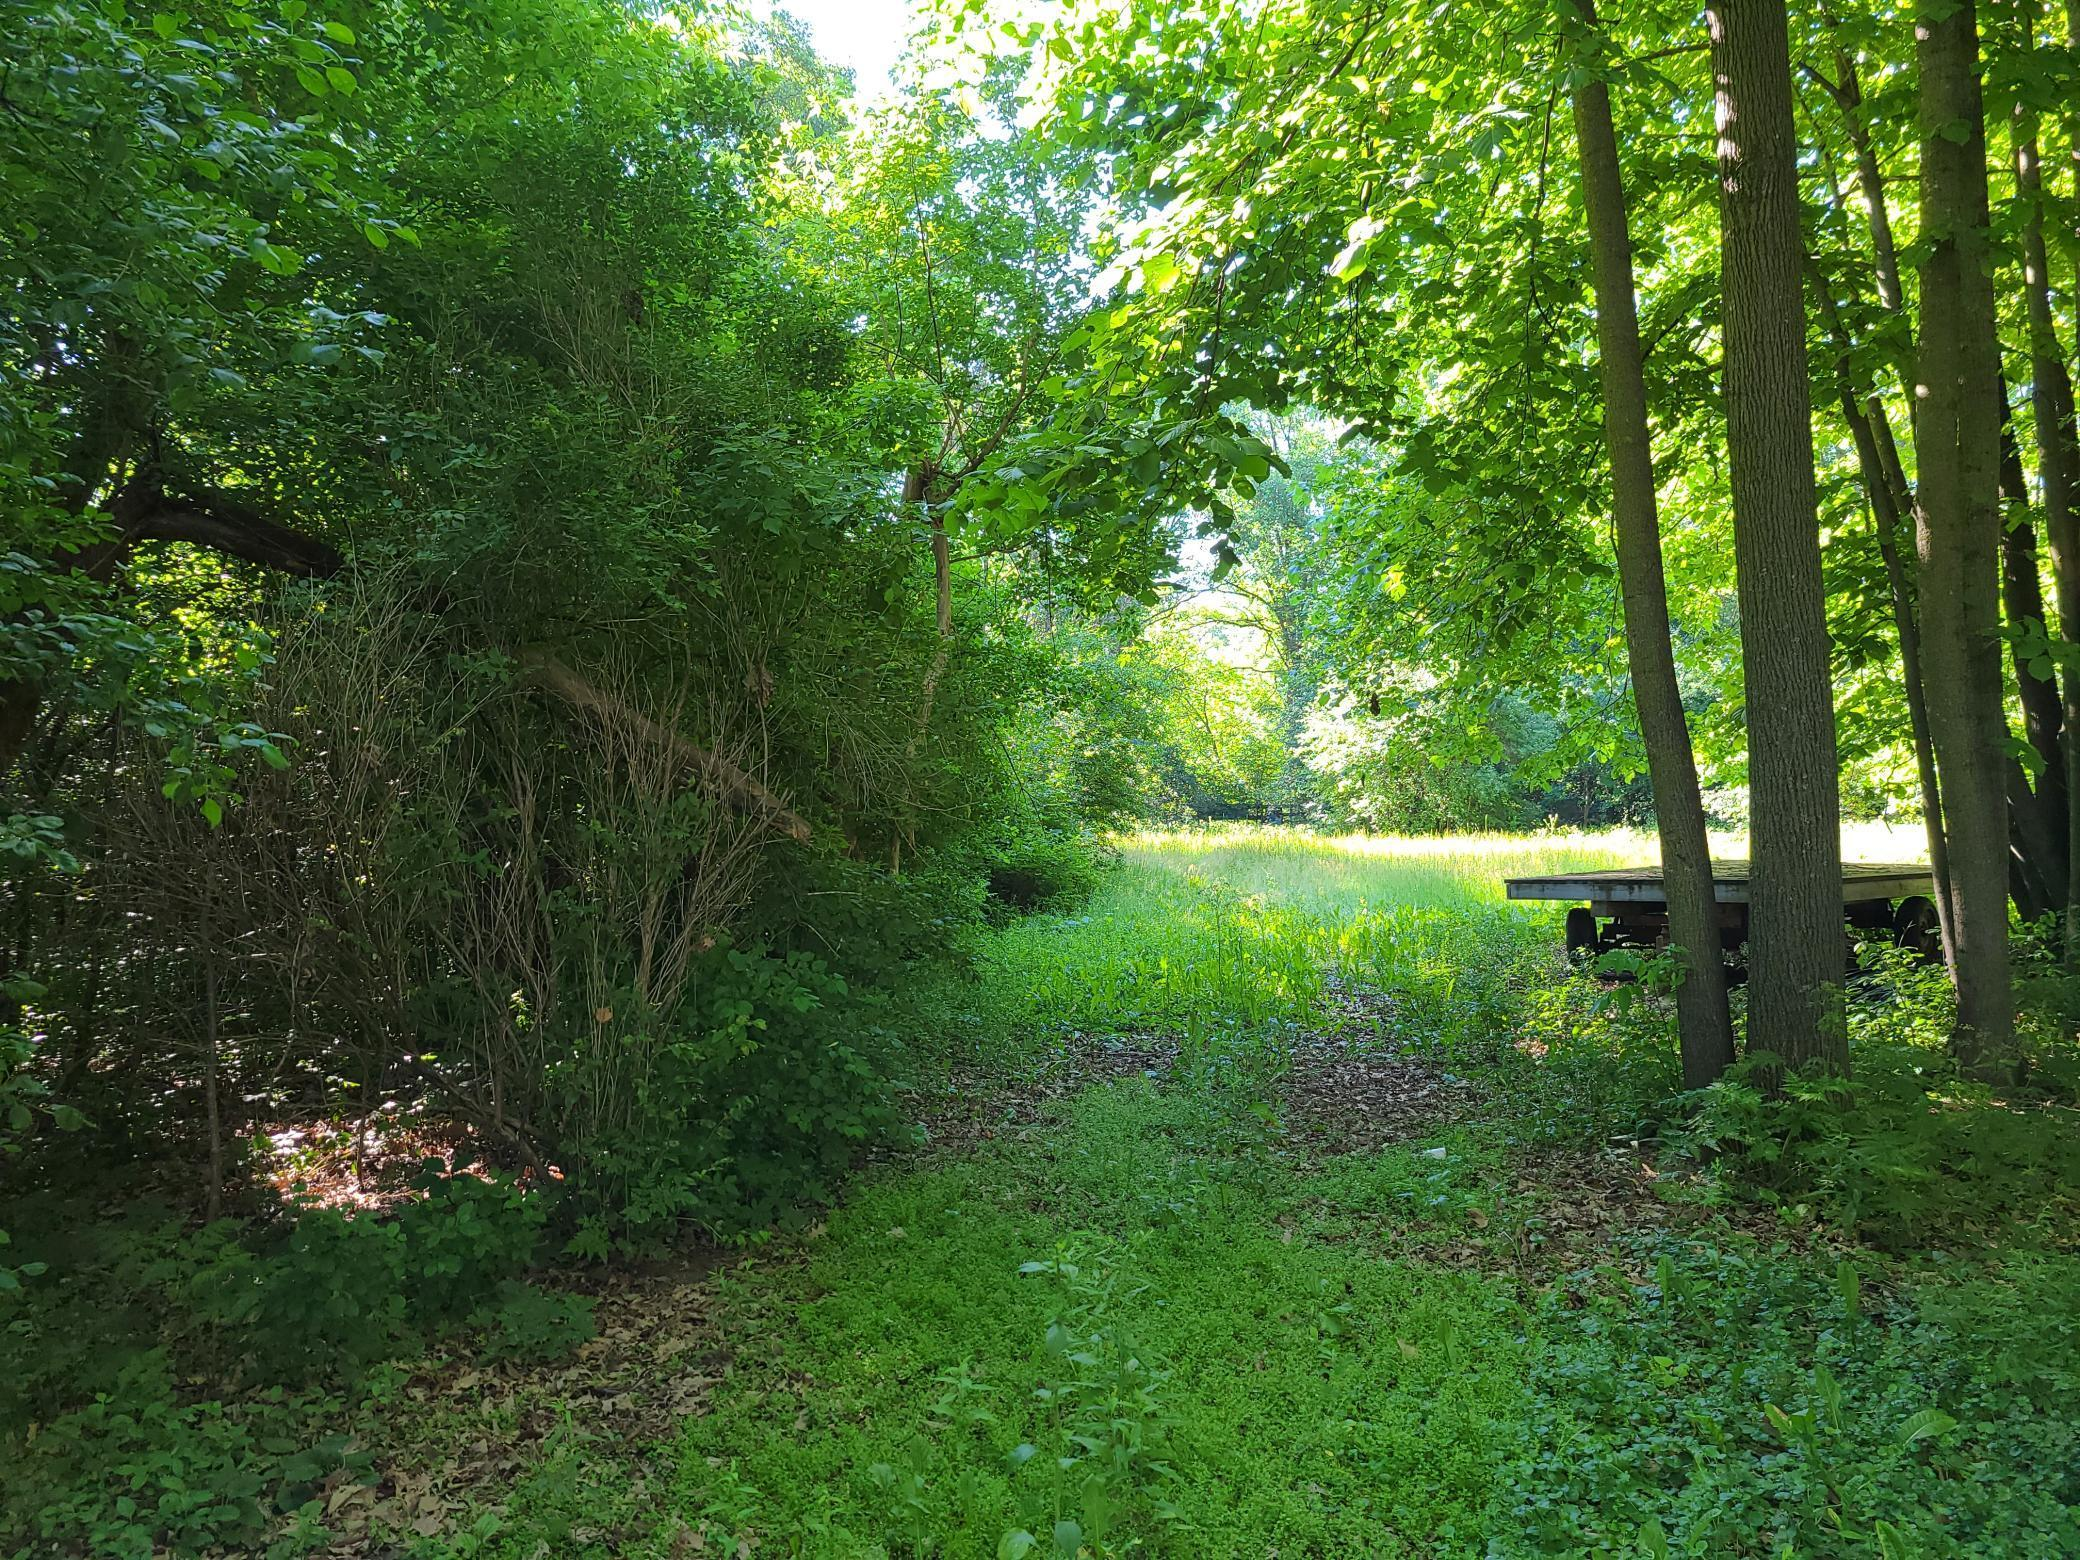 0 Hwy 8 Property Photo - Beaver Twp, WI real estate listing